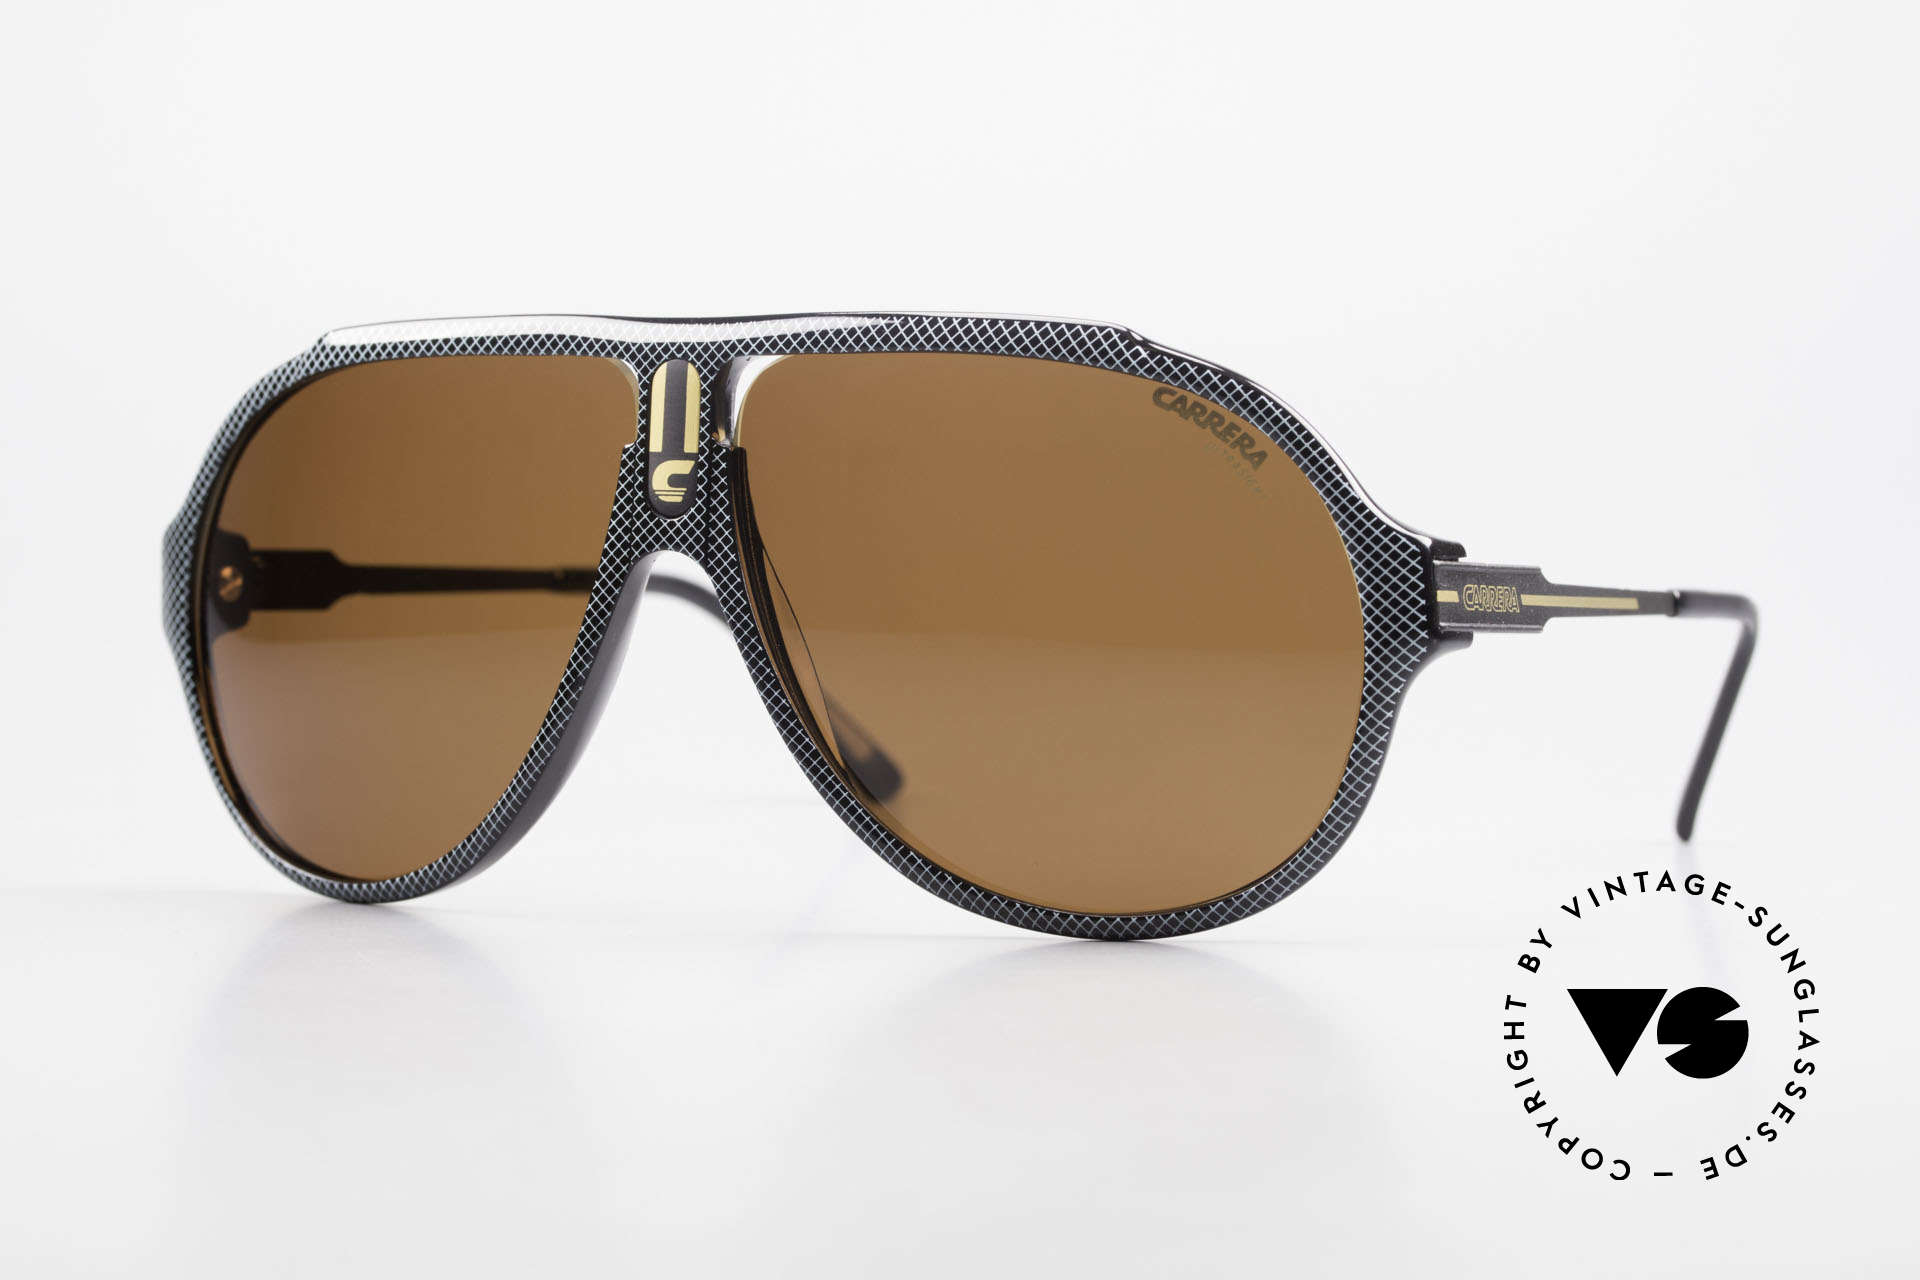 Carrera 5565 Old Vintage Sunglasses 1980's, CARRERA 5565 = a design classic from the mid 1980's, Made for Men and Women